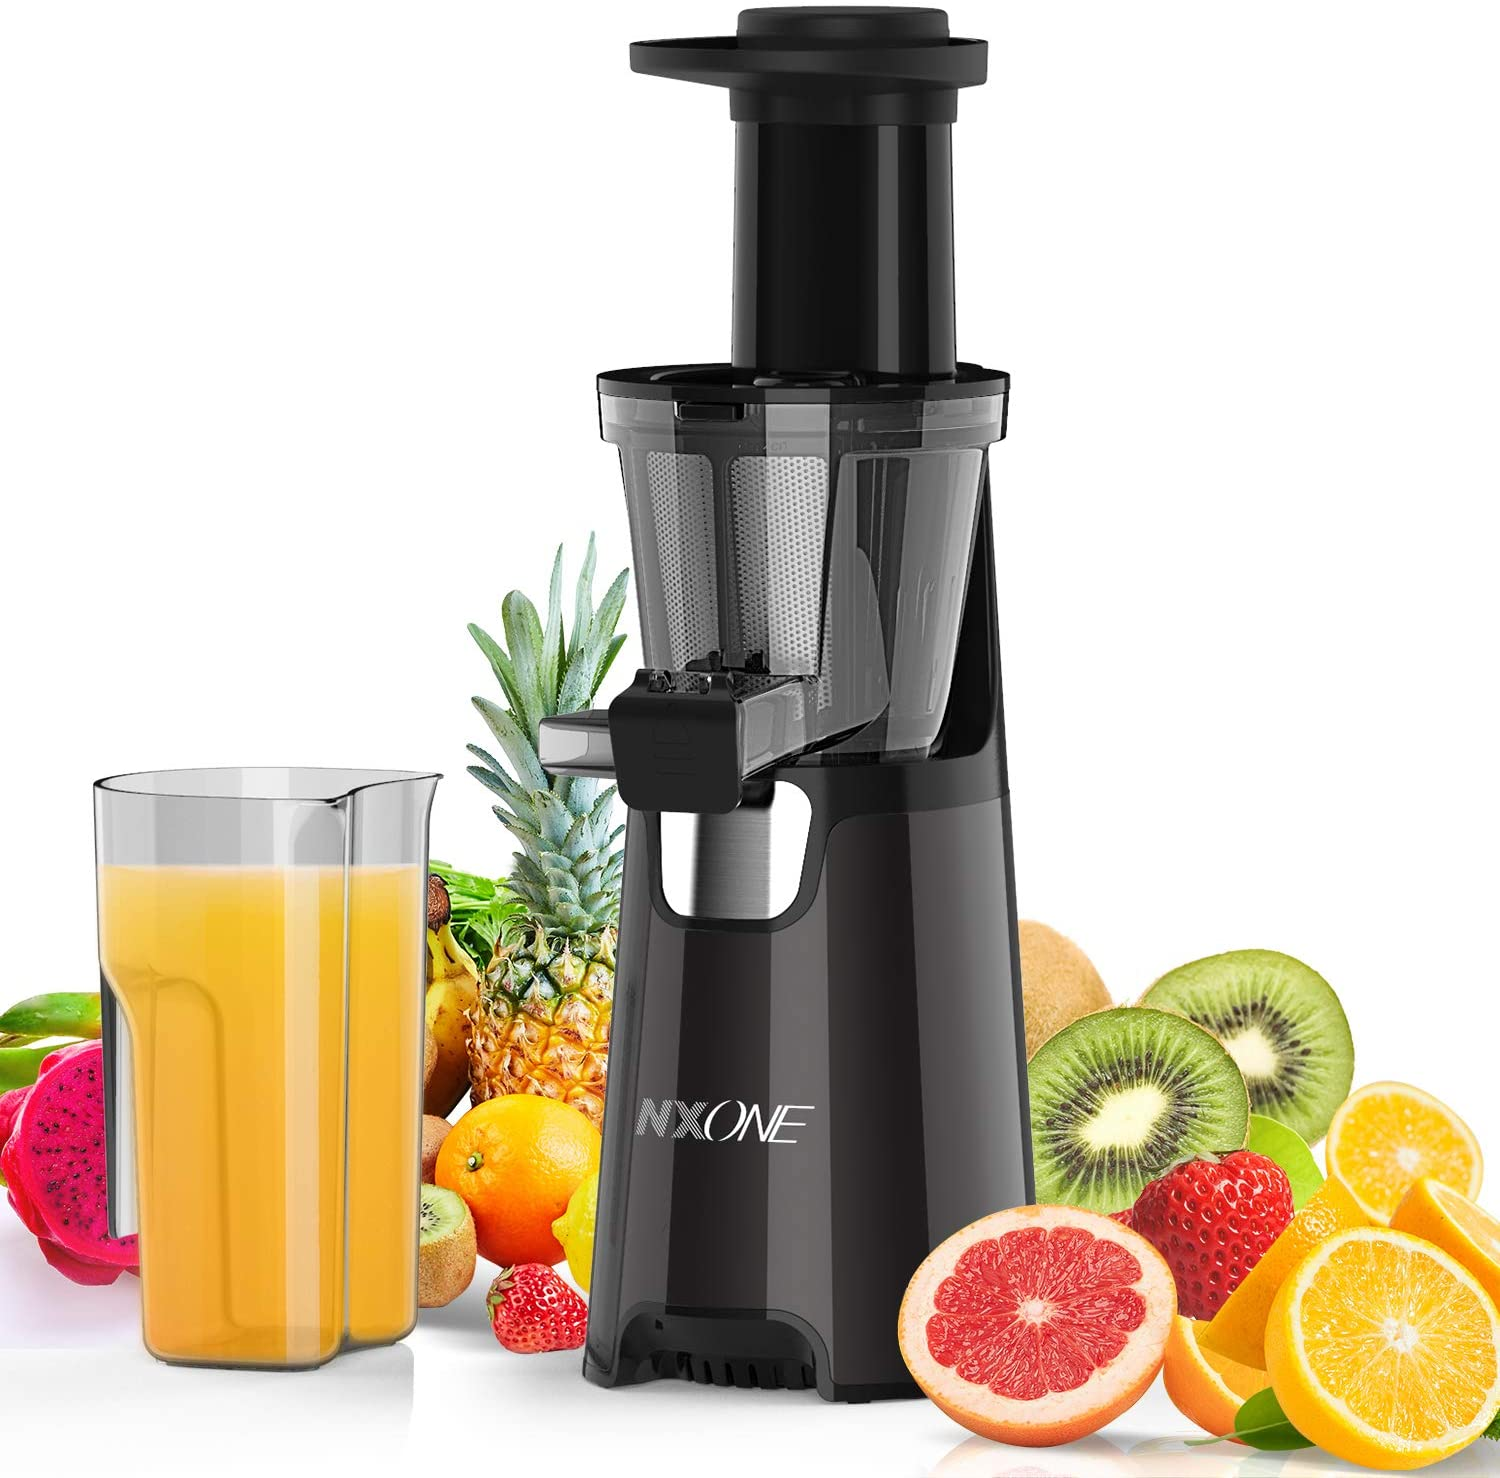 A black slow juicer next to a pitcher of orange juice and fresh fruits